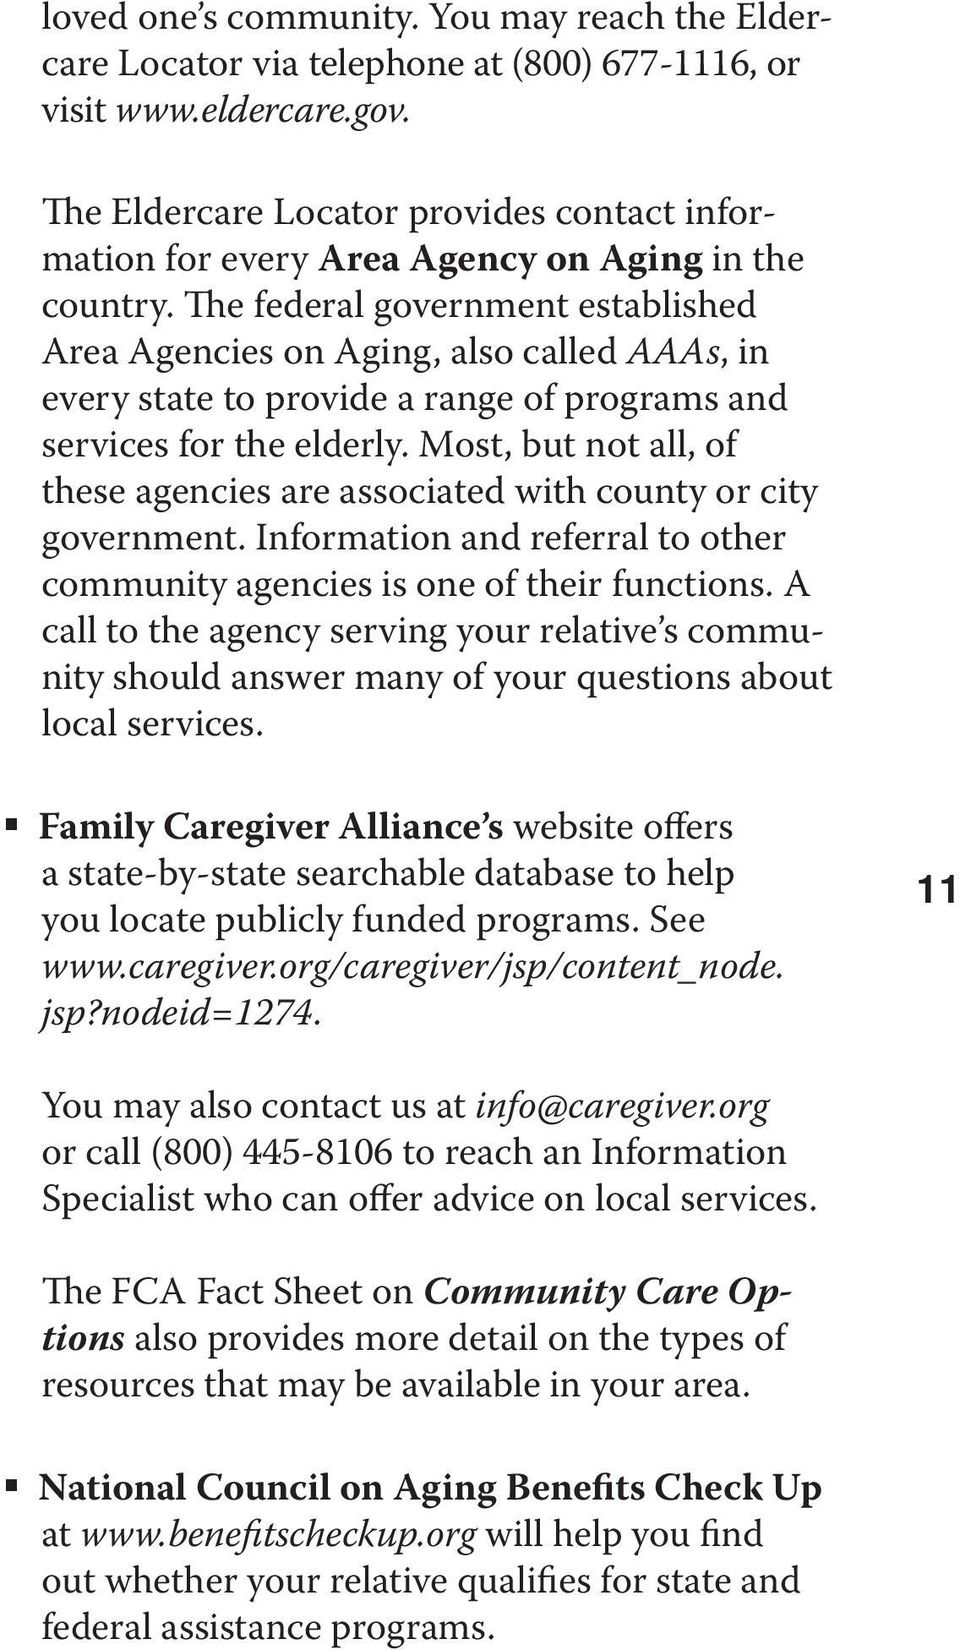 The federal government established Area Agencies on Aging, also called AAAs, in every state to provide a range of programs and services for the elderly.